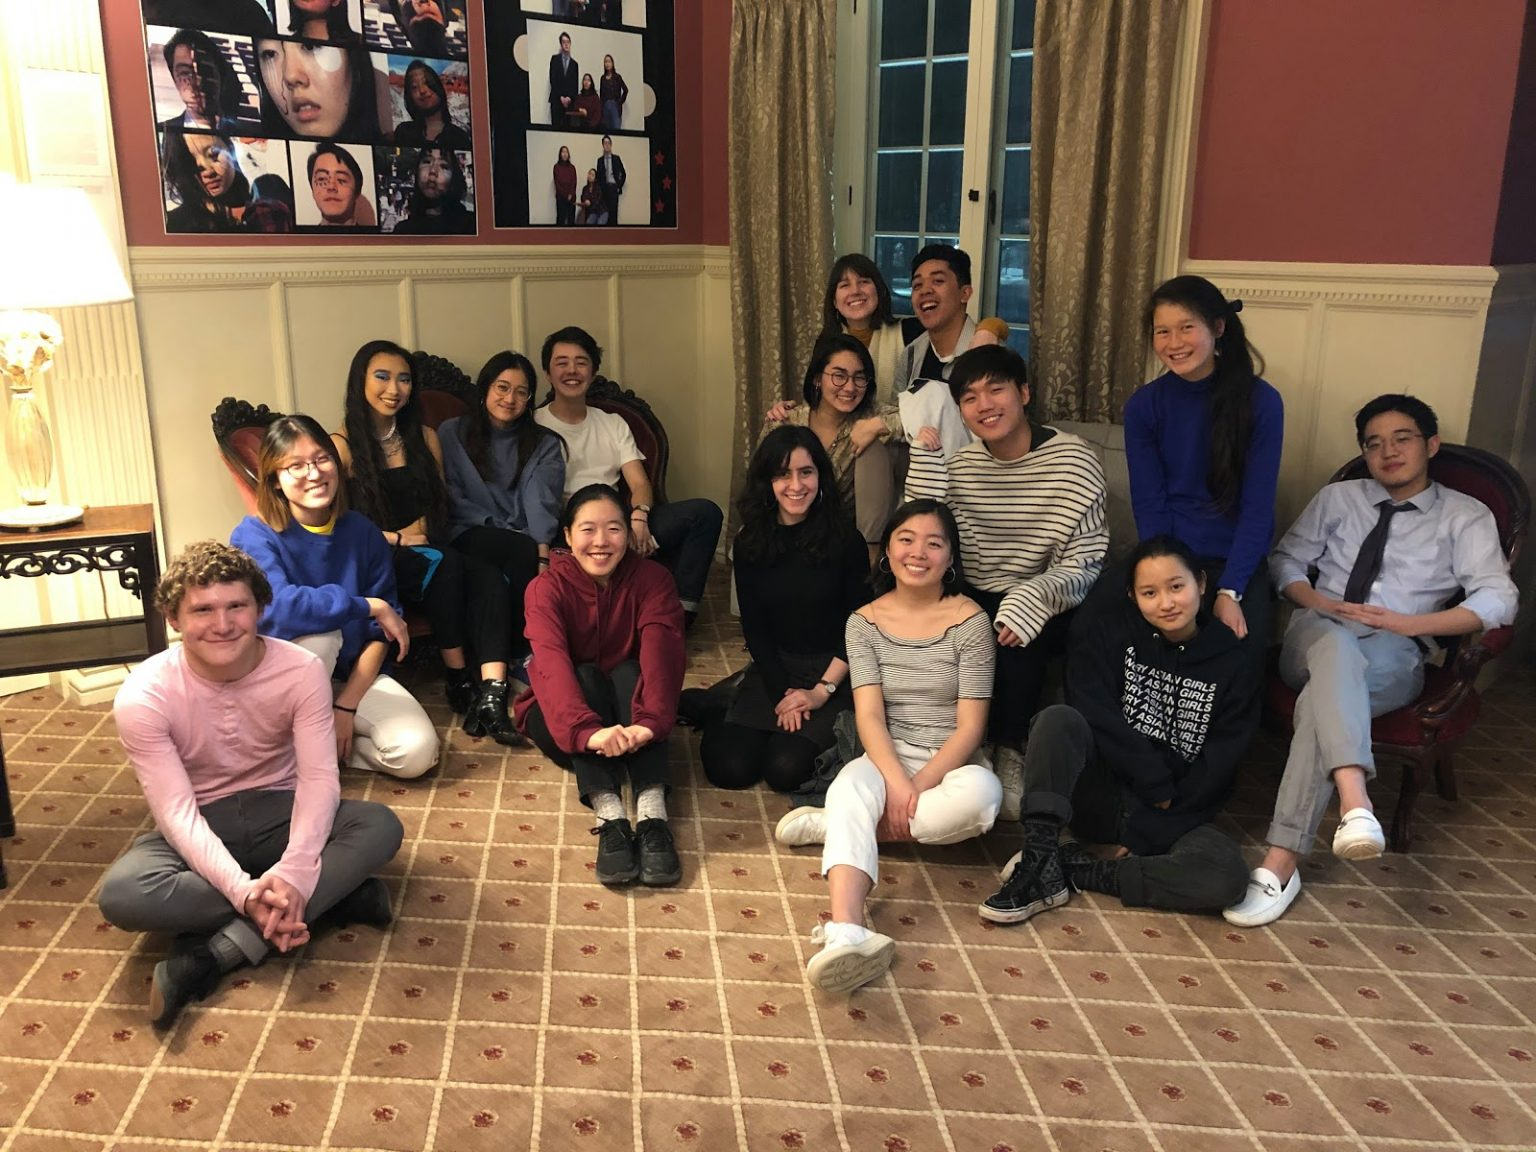 Vassar College students gather during a student showcase project for an Asian American Studies class.